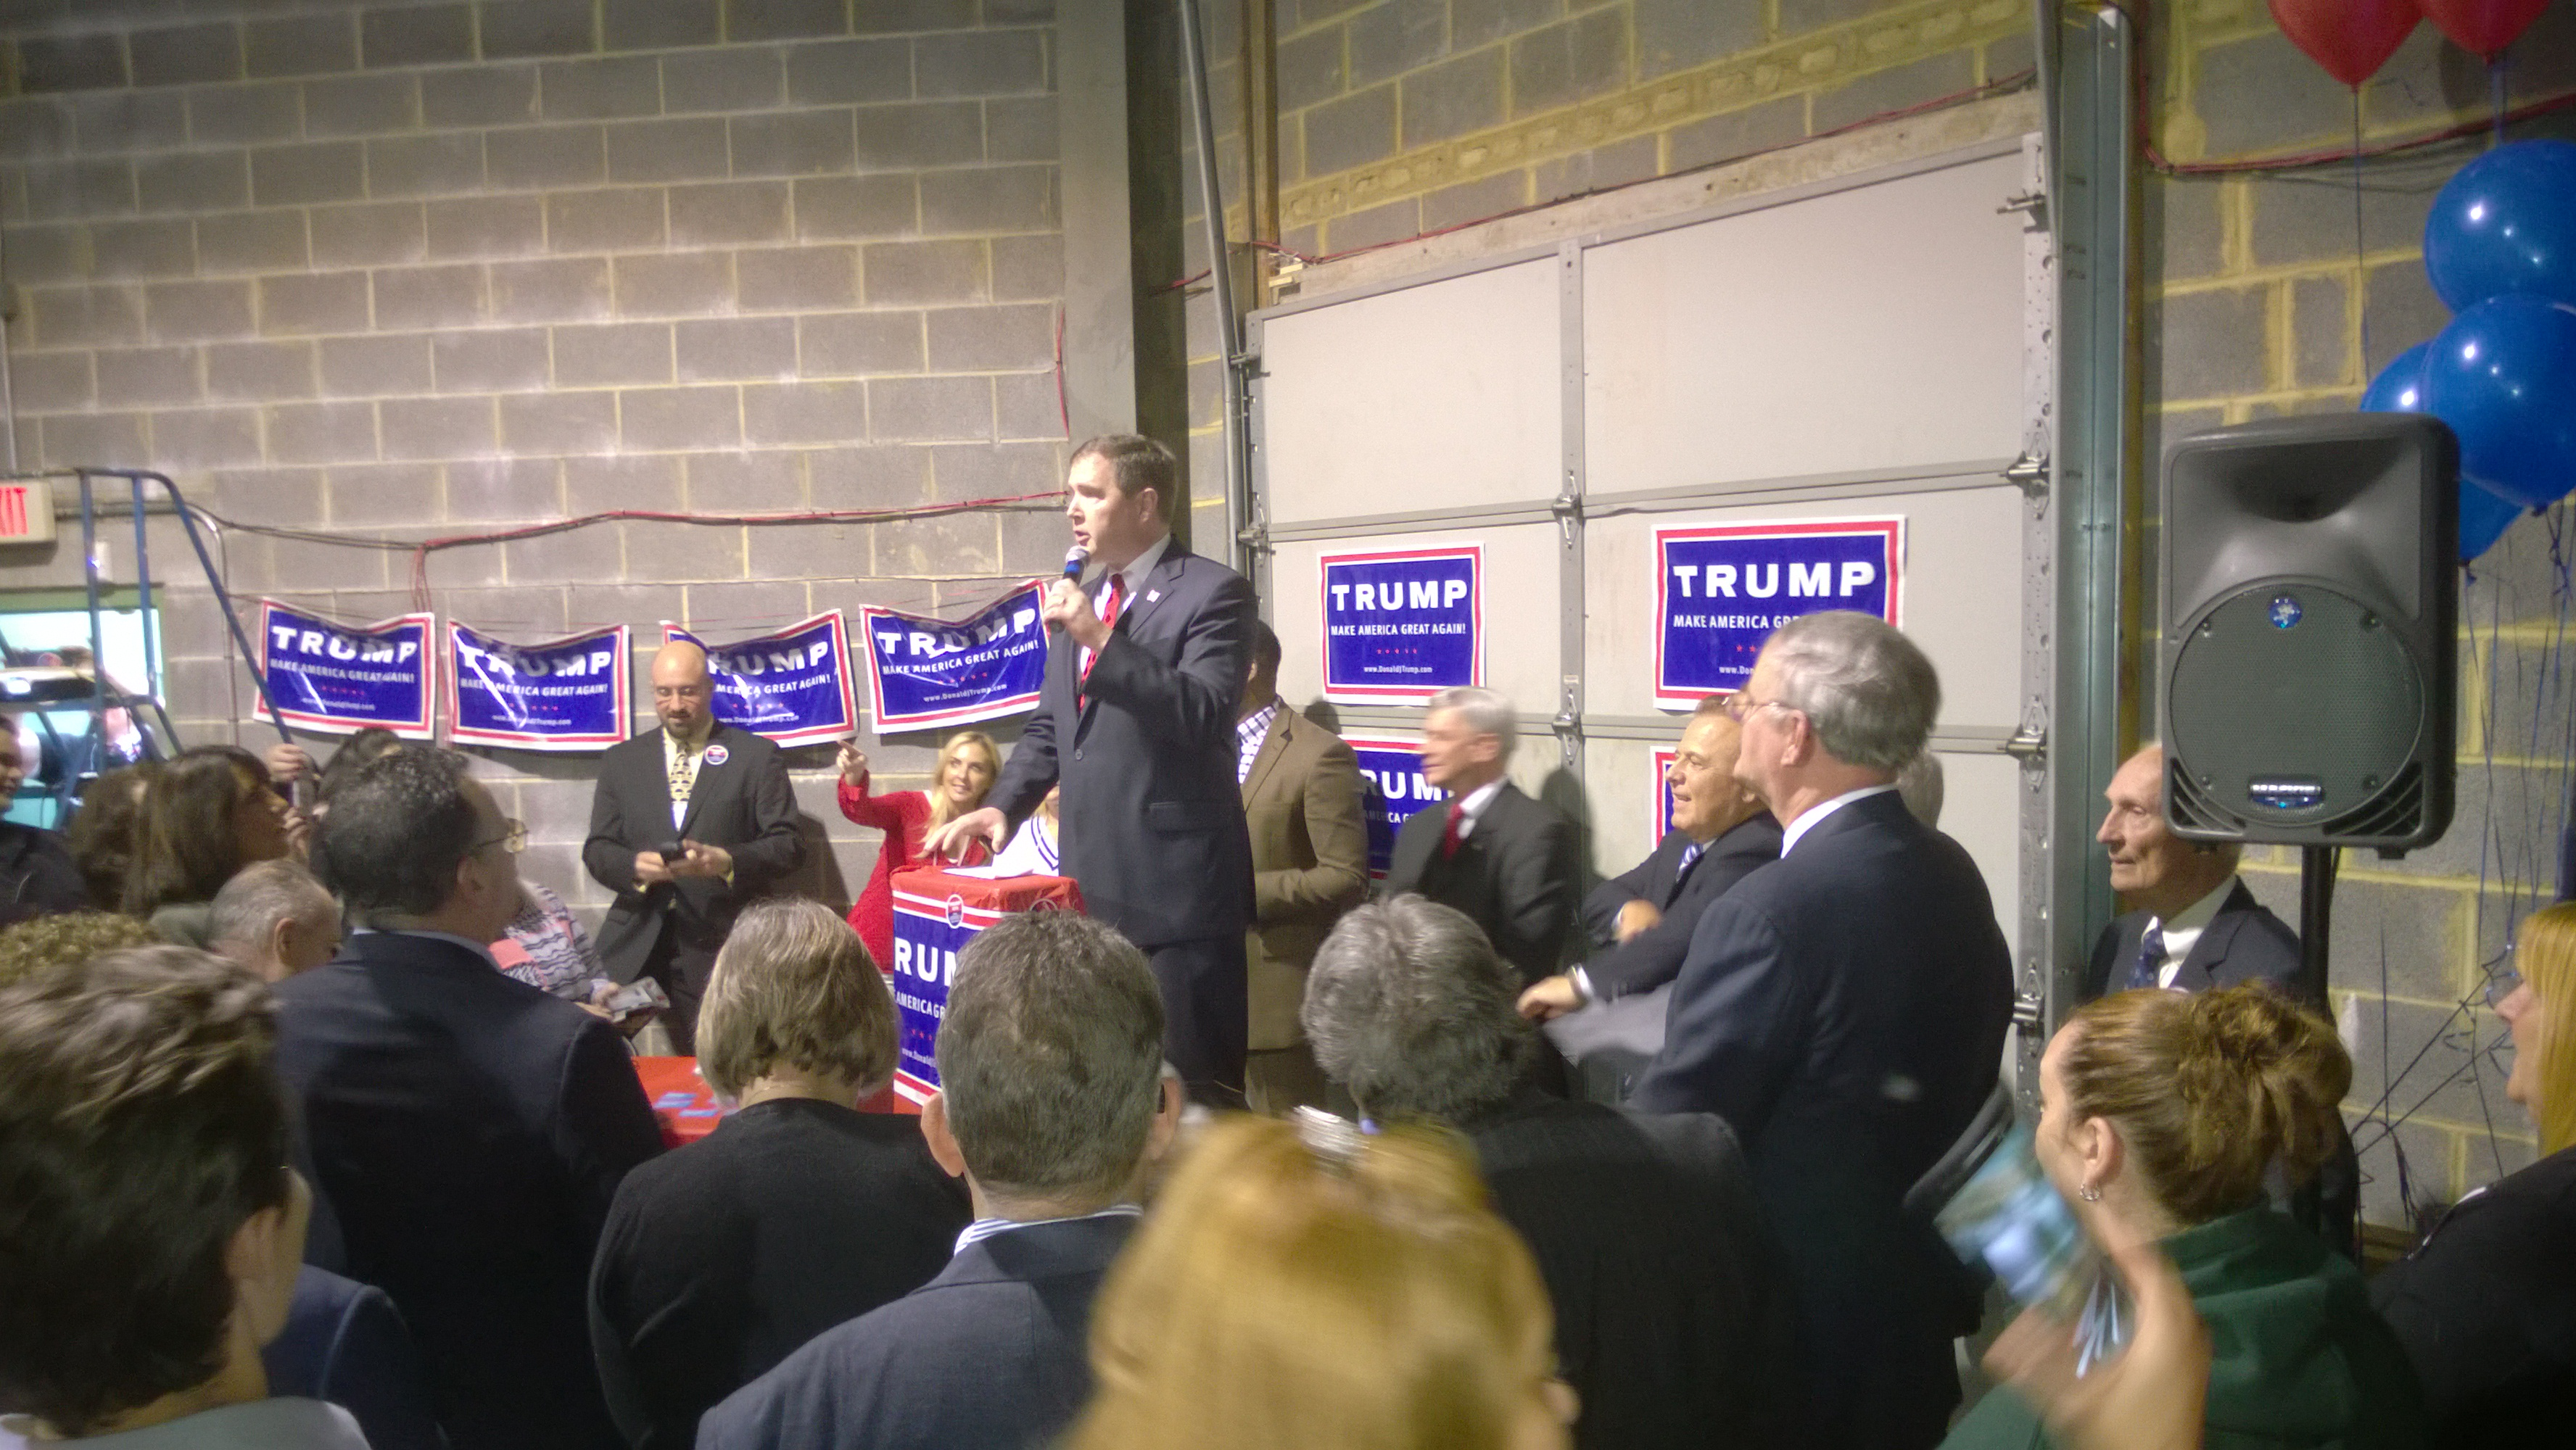 Senator Mike Doherty speaks in Edison, NJ on May 3rd, 2016 at the opening of the Trump headquarters in Edison, NJ